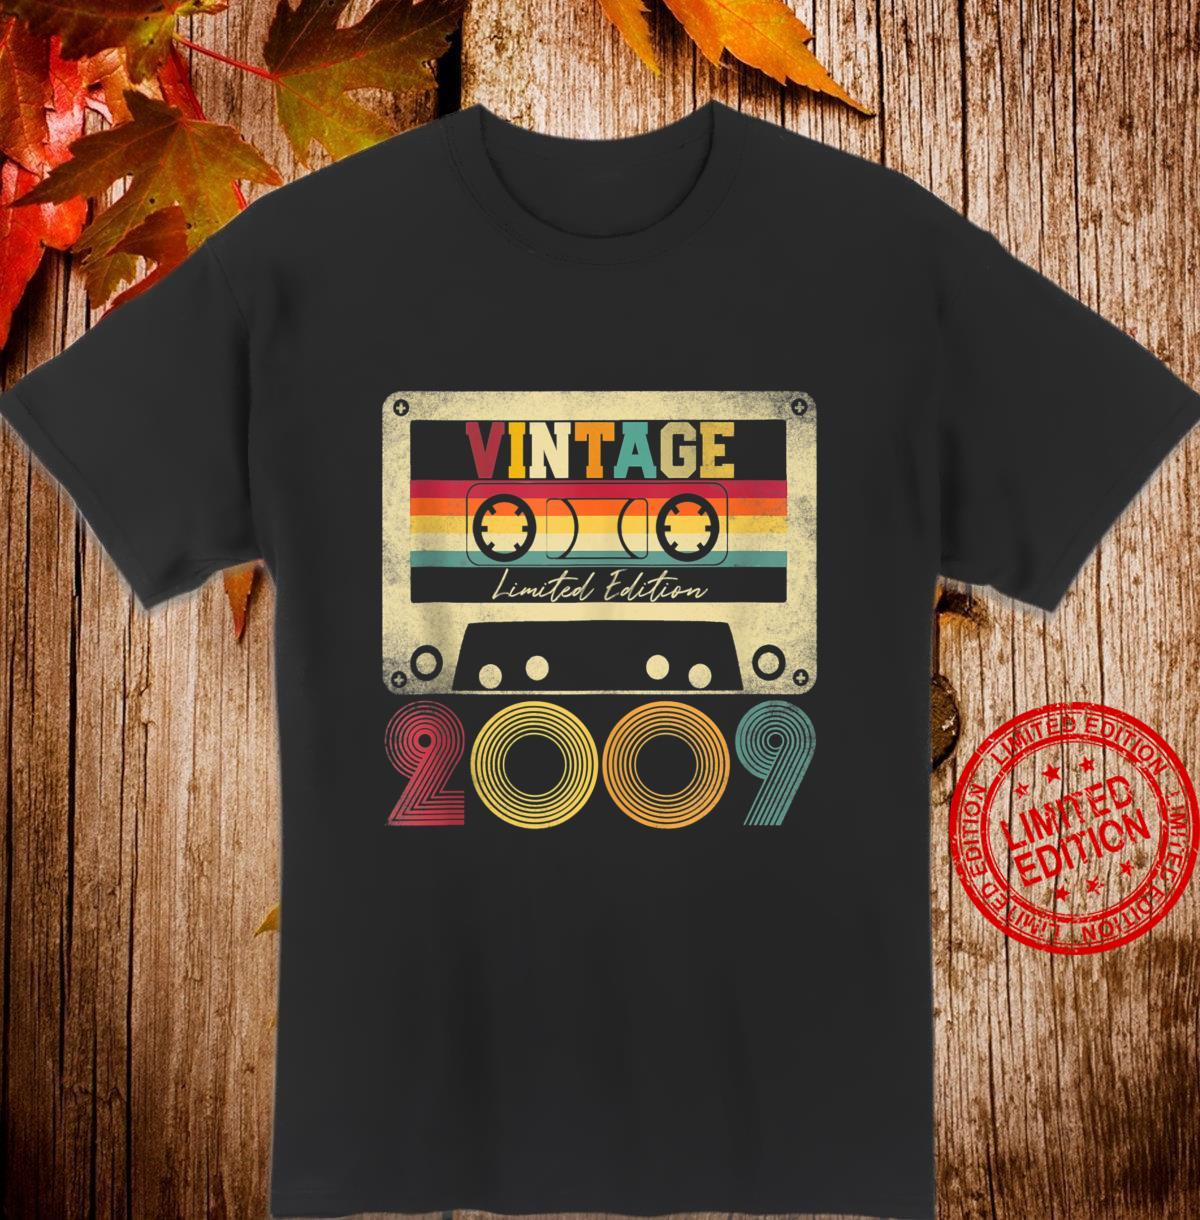 Vintage 2009 12th Birthday 12 Years Old Limited Edition Shirt